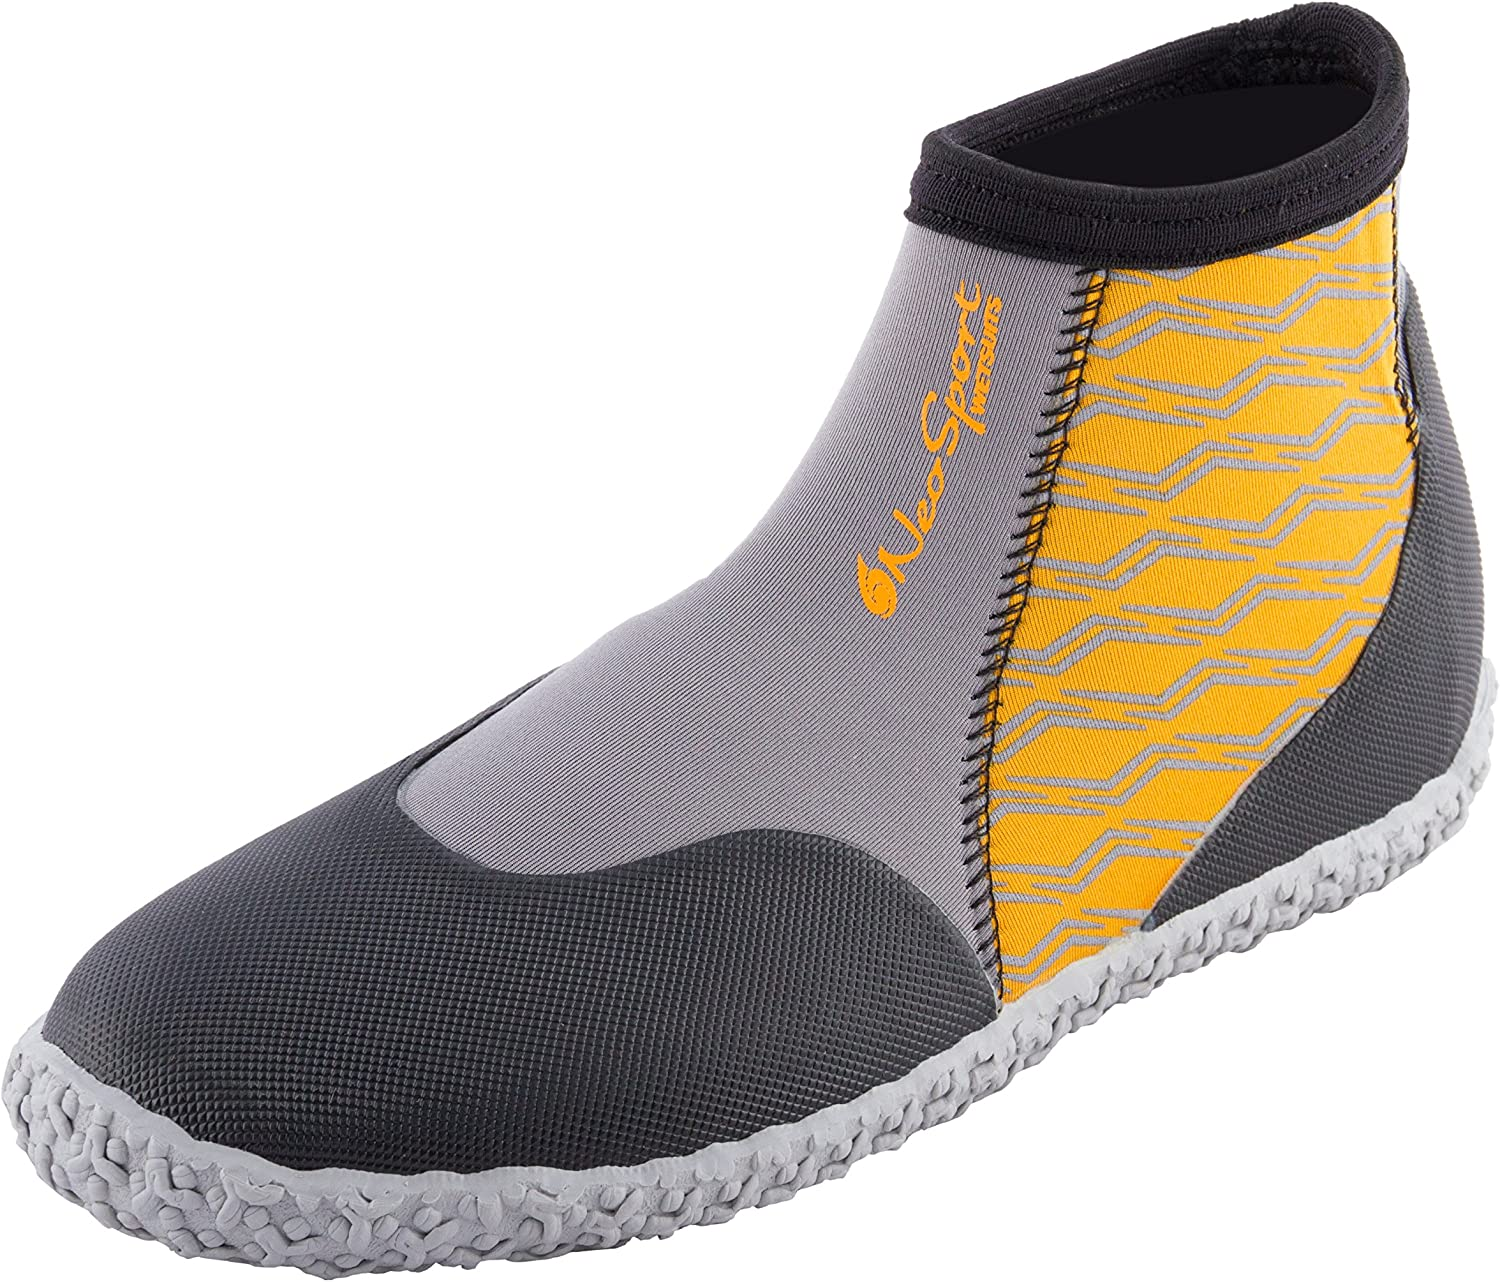 NeoSport Wetsuits Premium Neoprene 5mm Low Top Pull On Boot- Water Shoes, Surfing & Diving